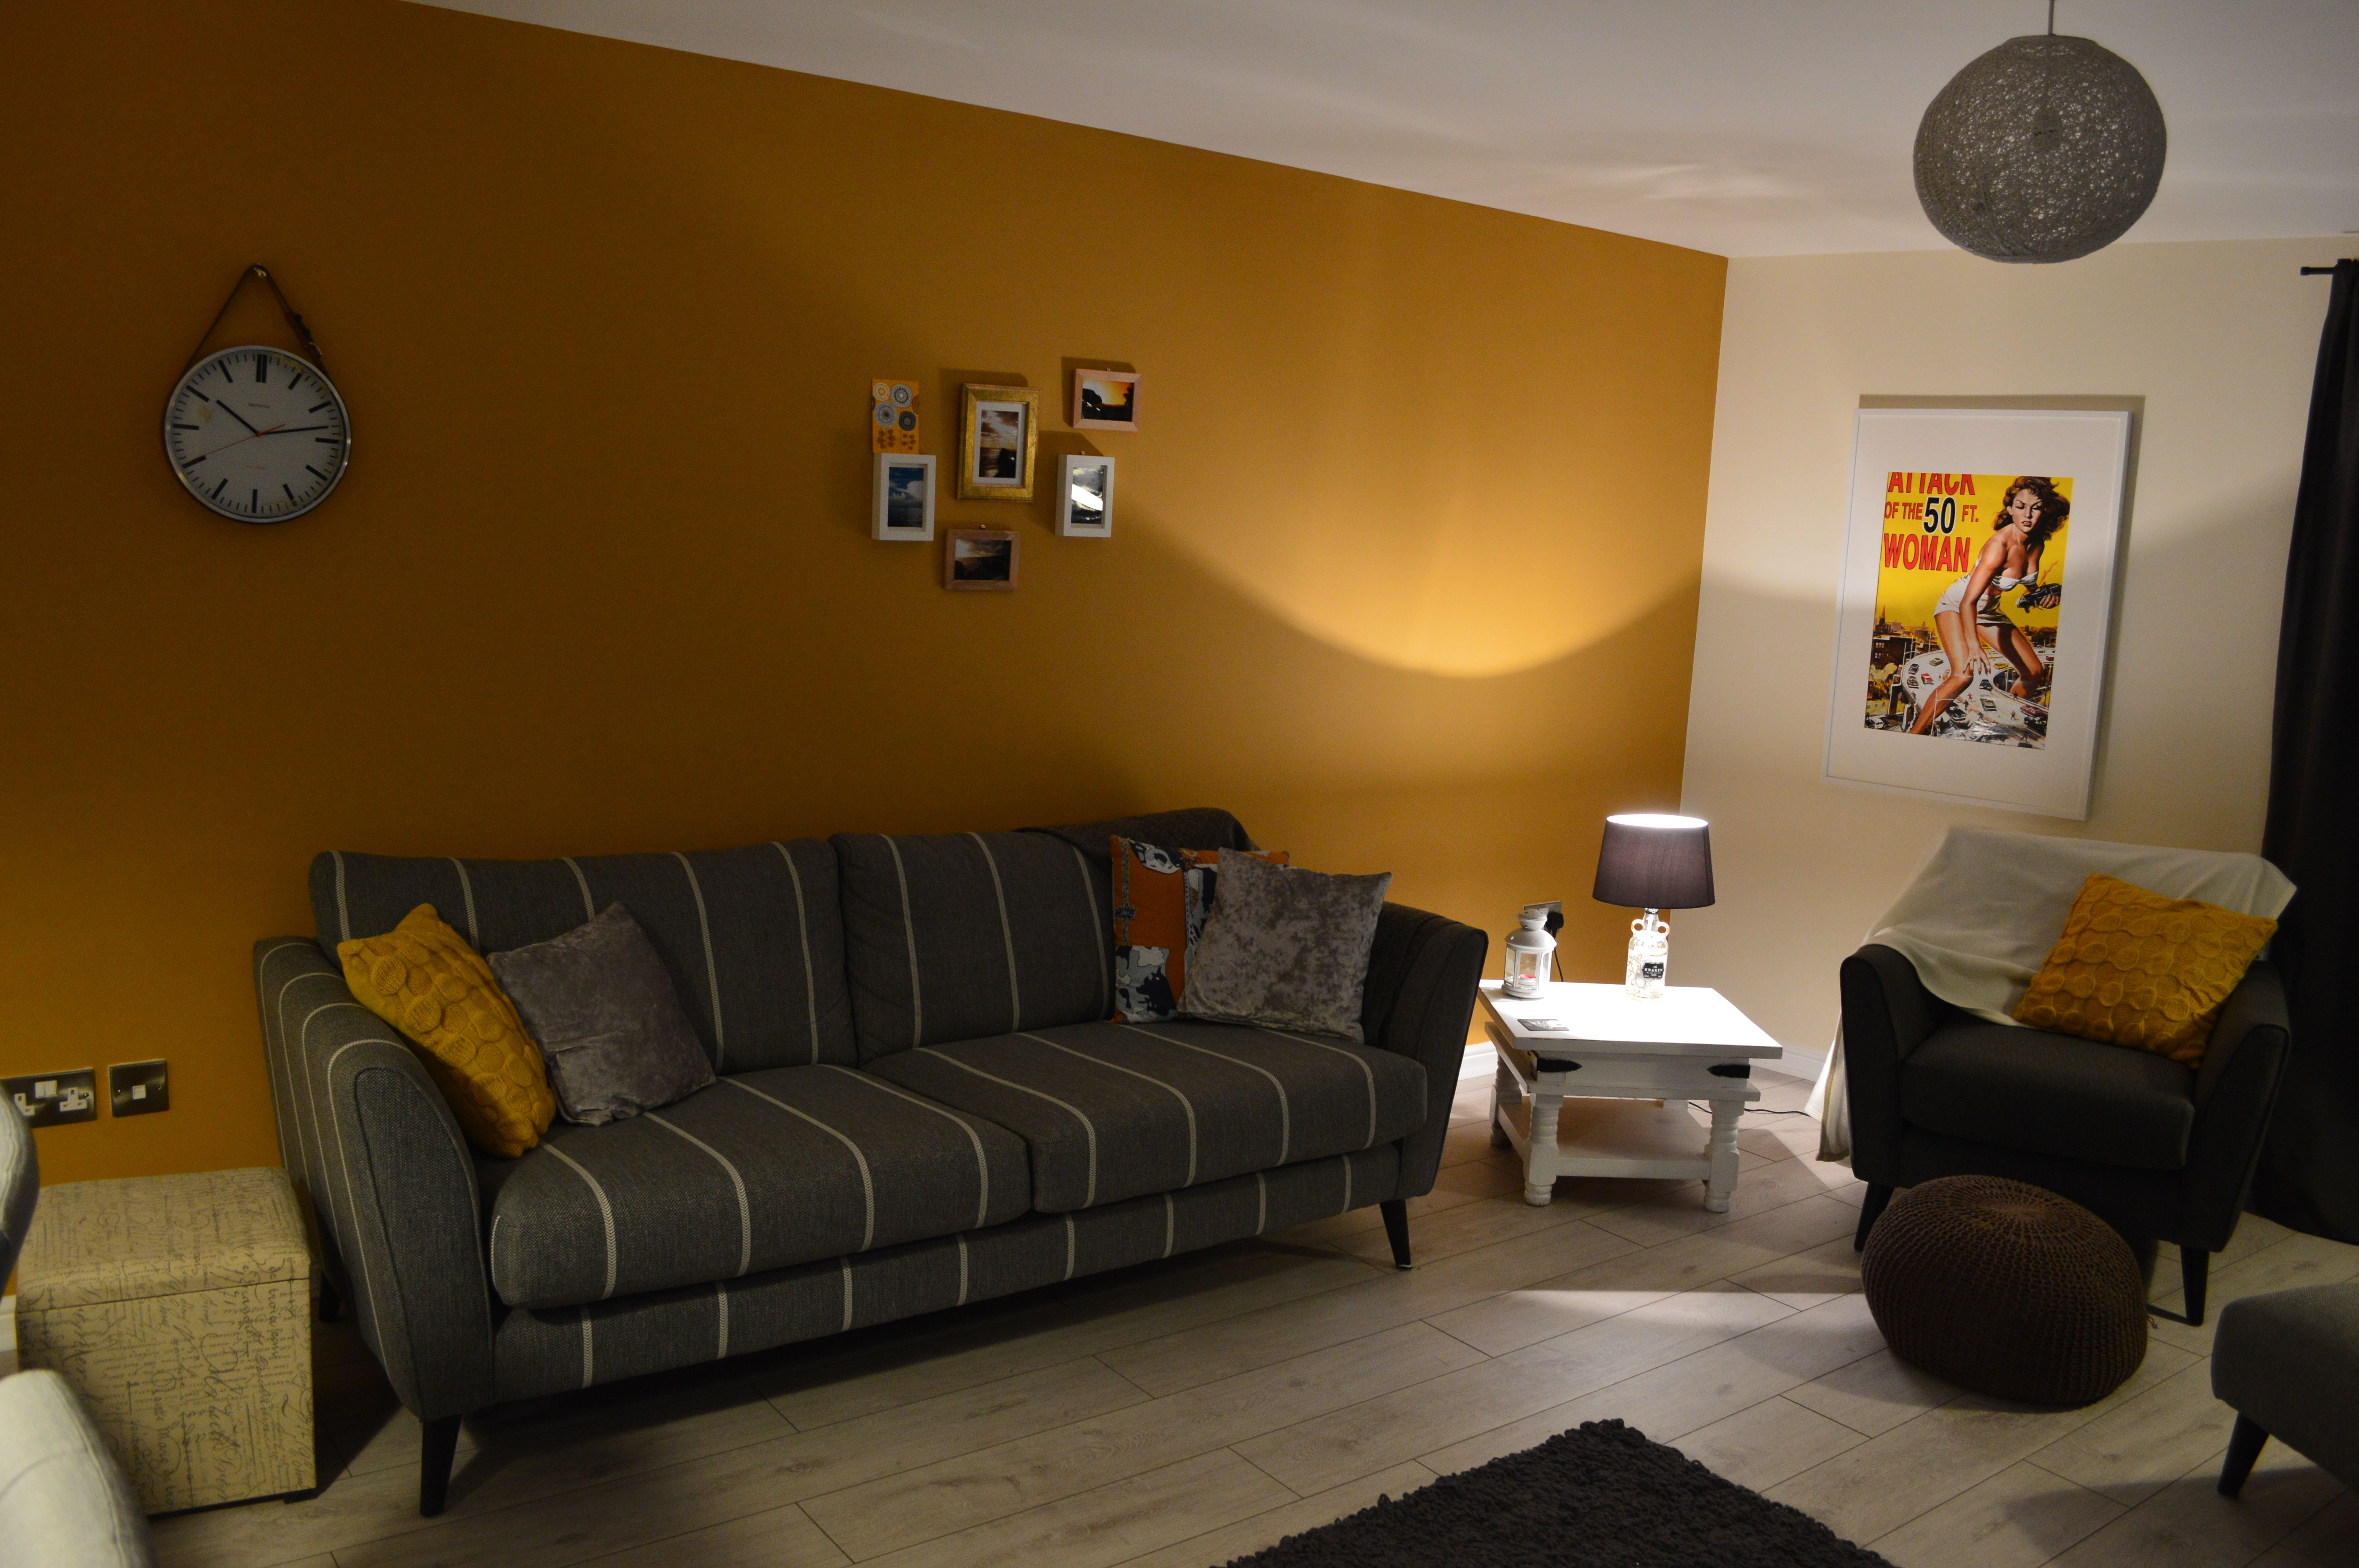 Wall Painting For Living Room India Small Desk Farrow And Ball Yellow Paint Belt Clock Attack Of The 50ft Woman Poster